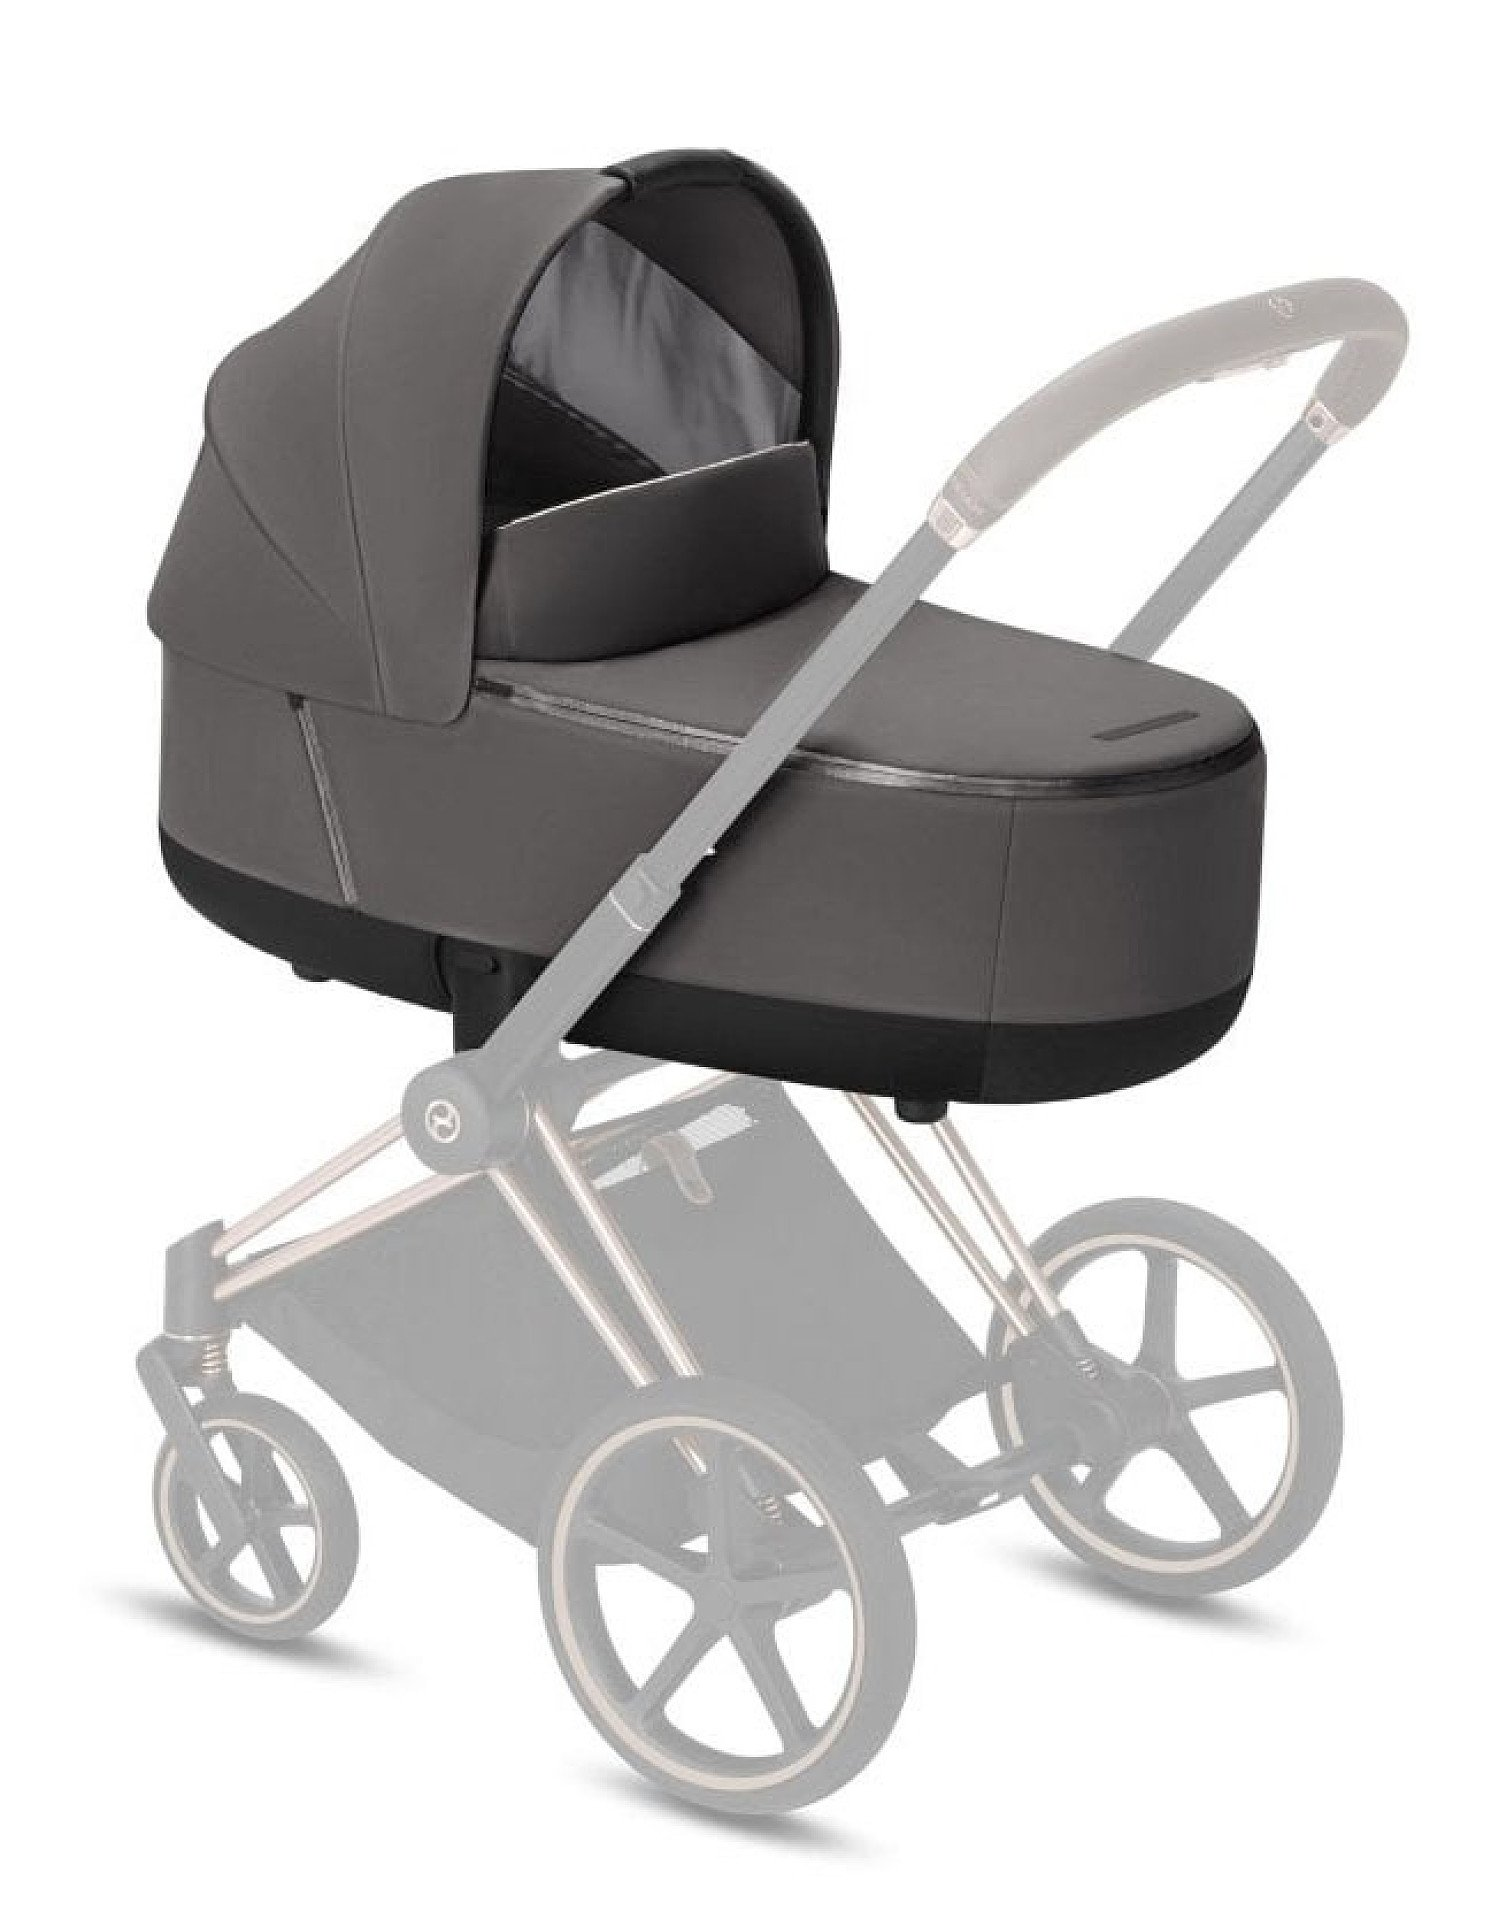 SAVE 11% - Cybex Priam Carry Cot Lux From!